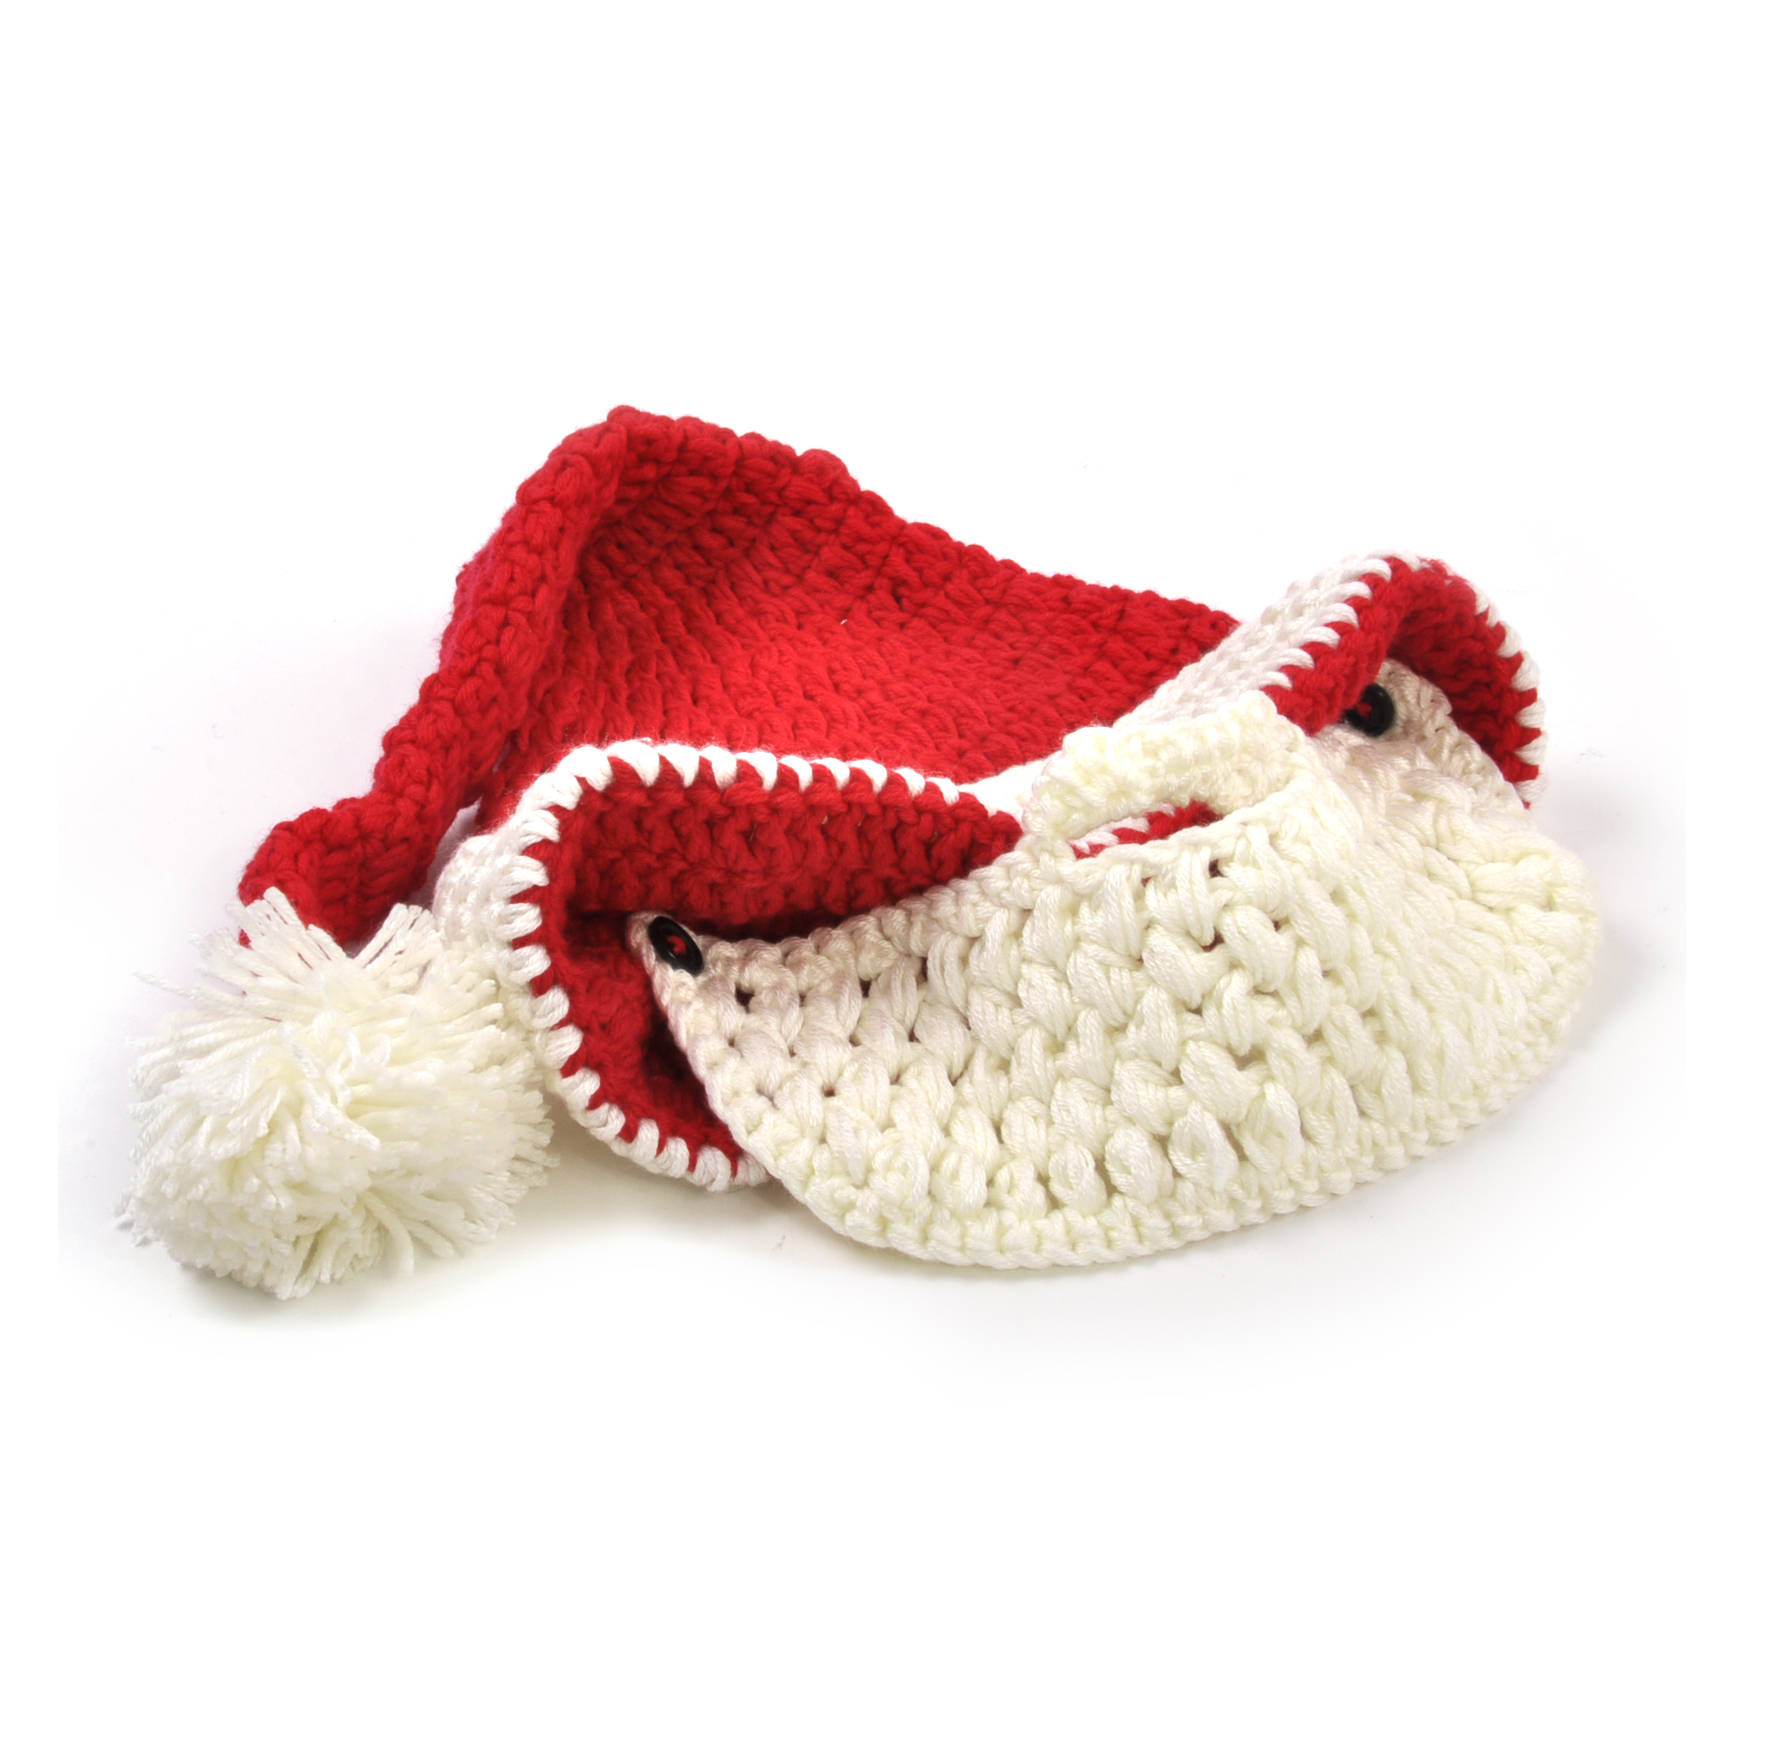 Knitted Santa Claus Hat with Detachable Beard | Pink Cat Shop